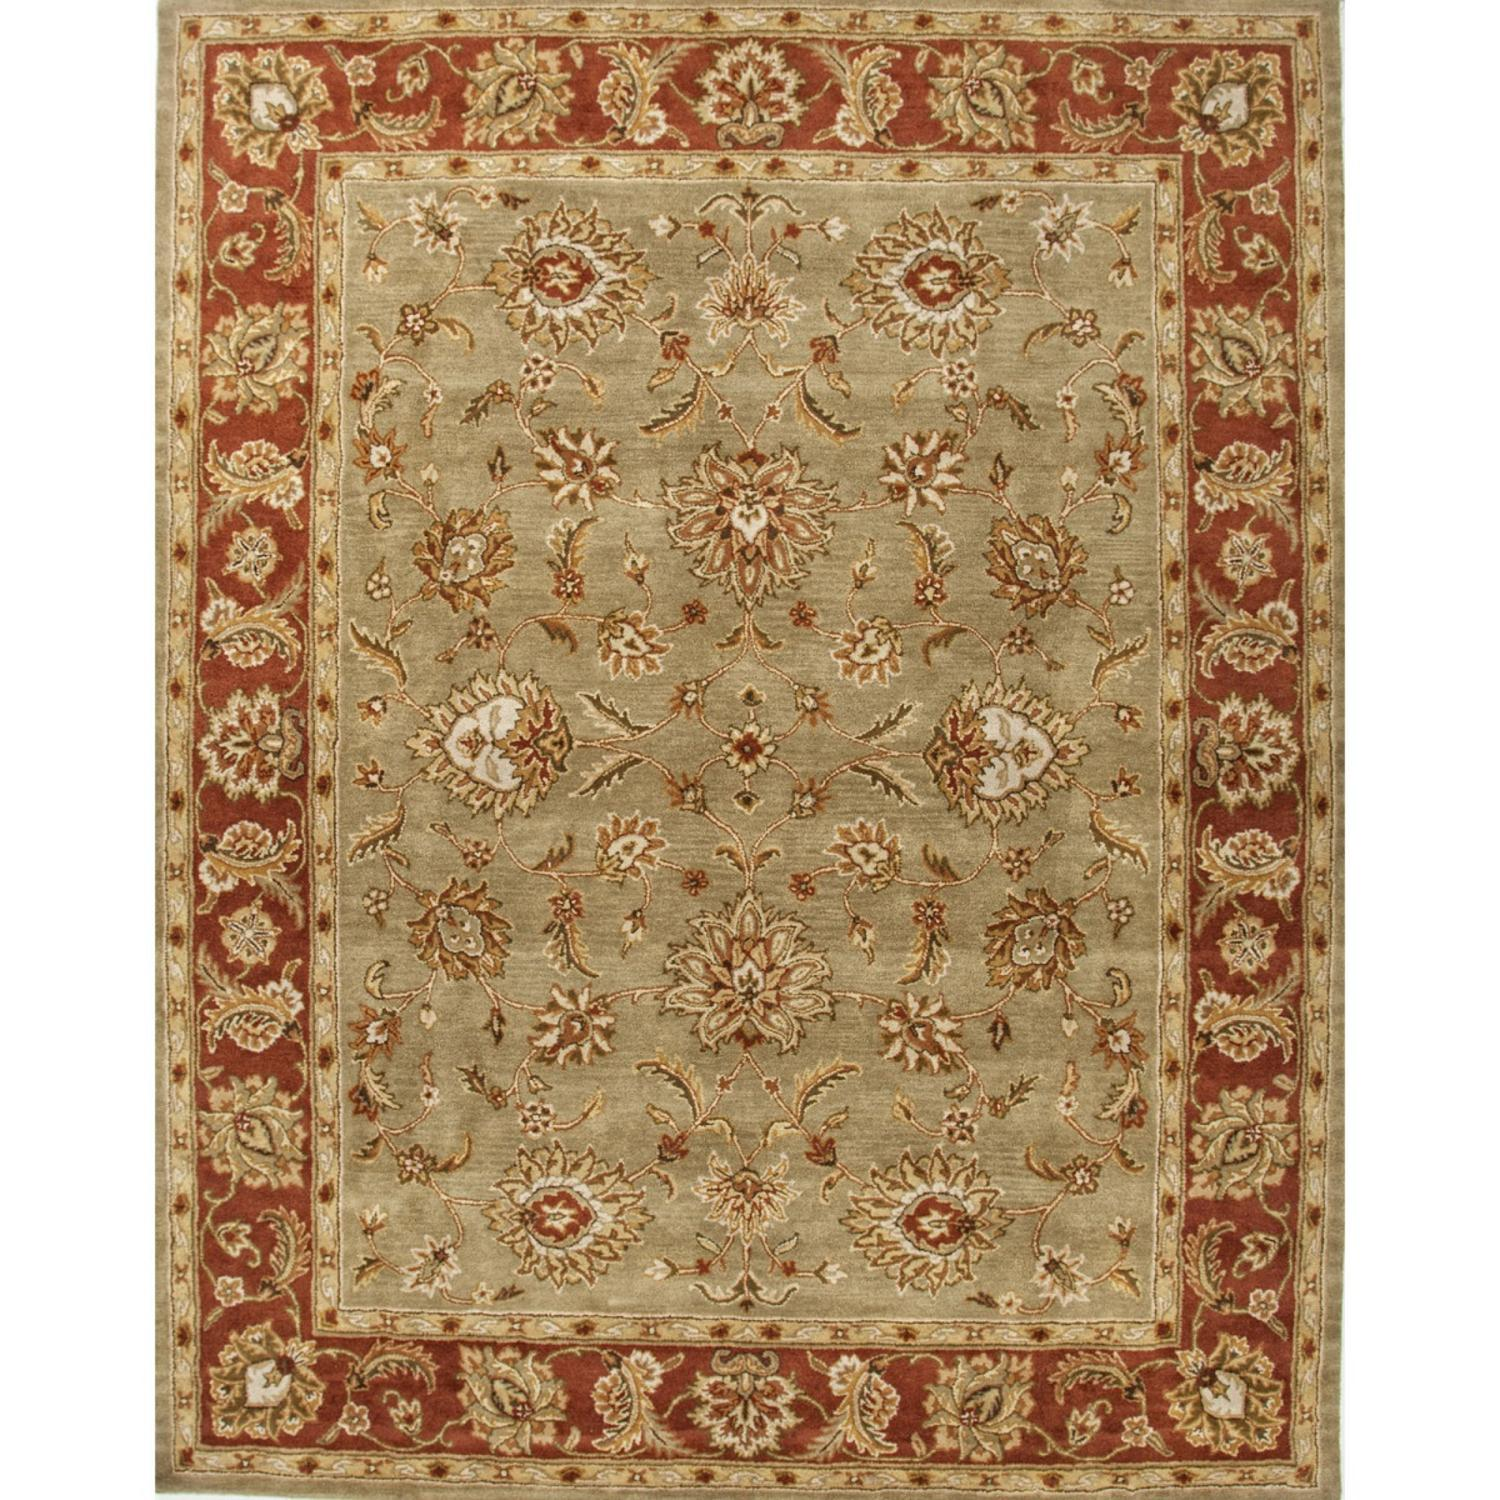 12' x 15' Cloudy Blue and Amber Brown Anthea Hand Tufted Wool Area Throw Rug